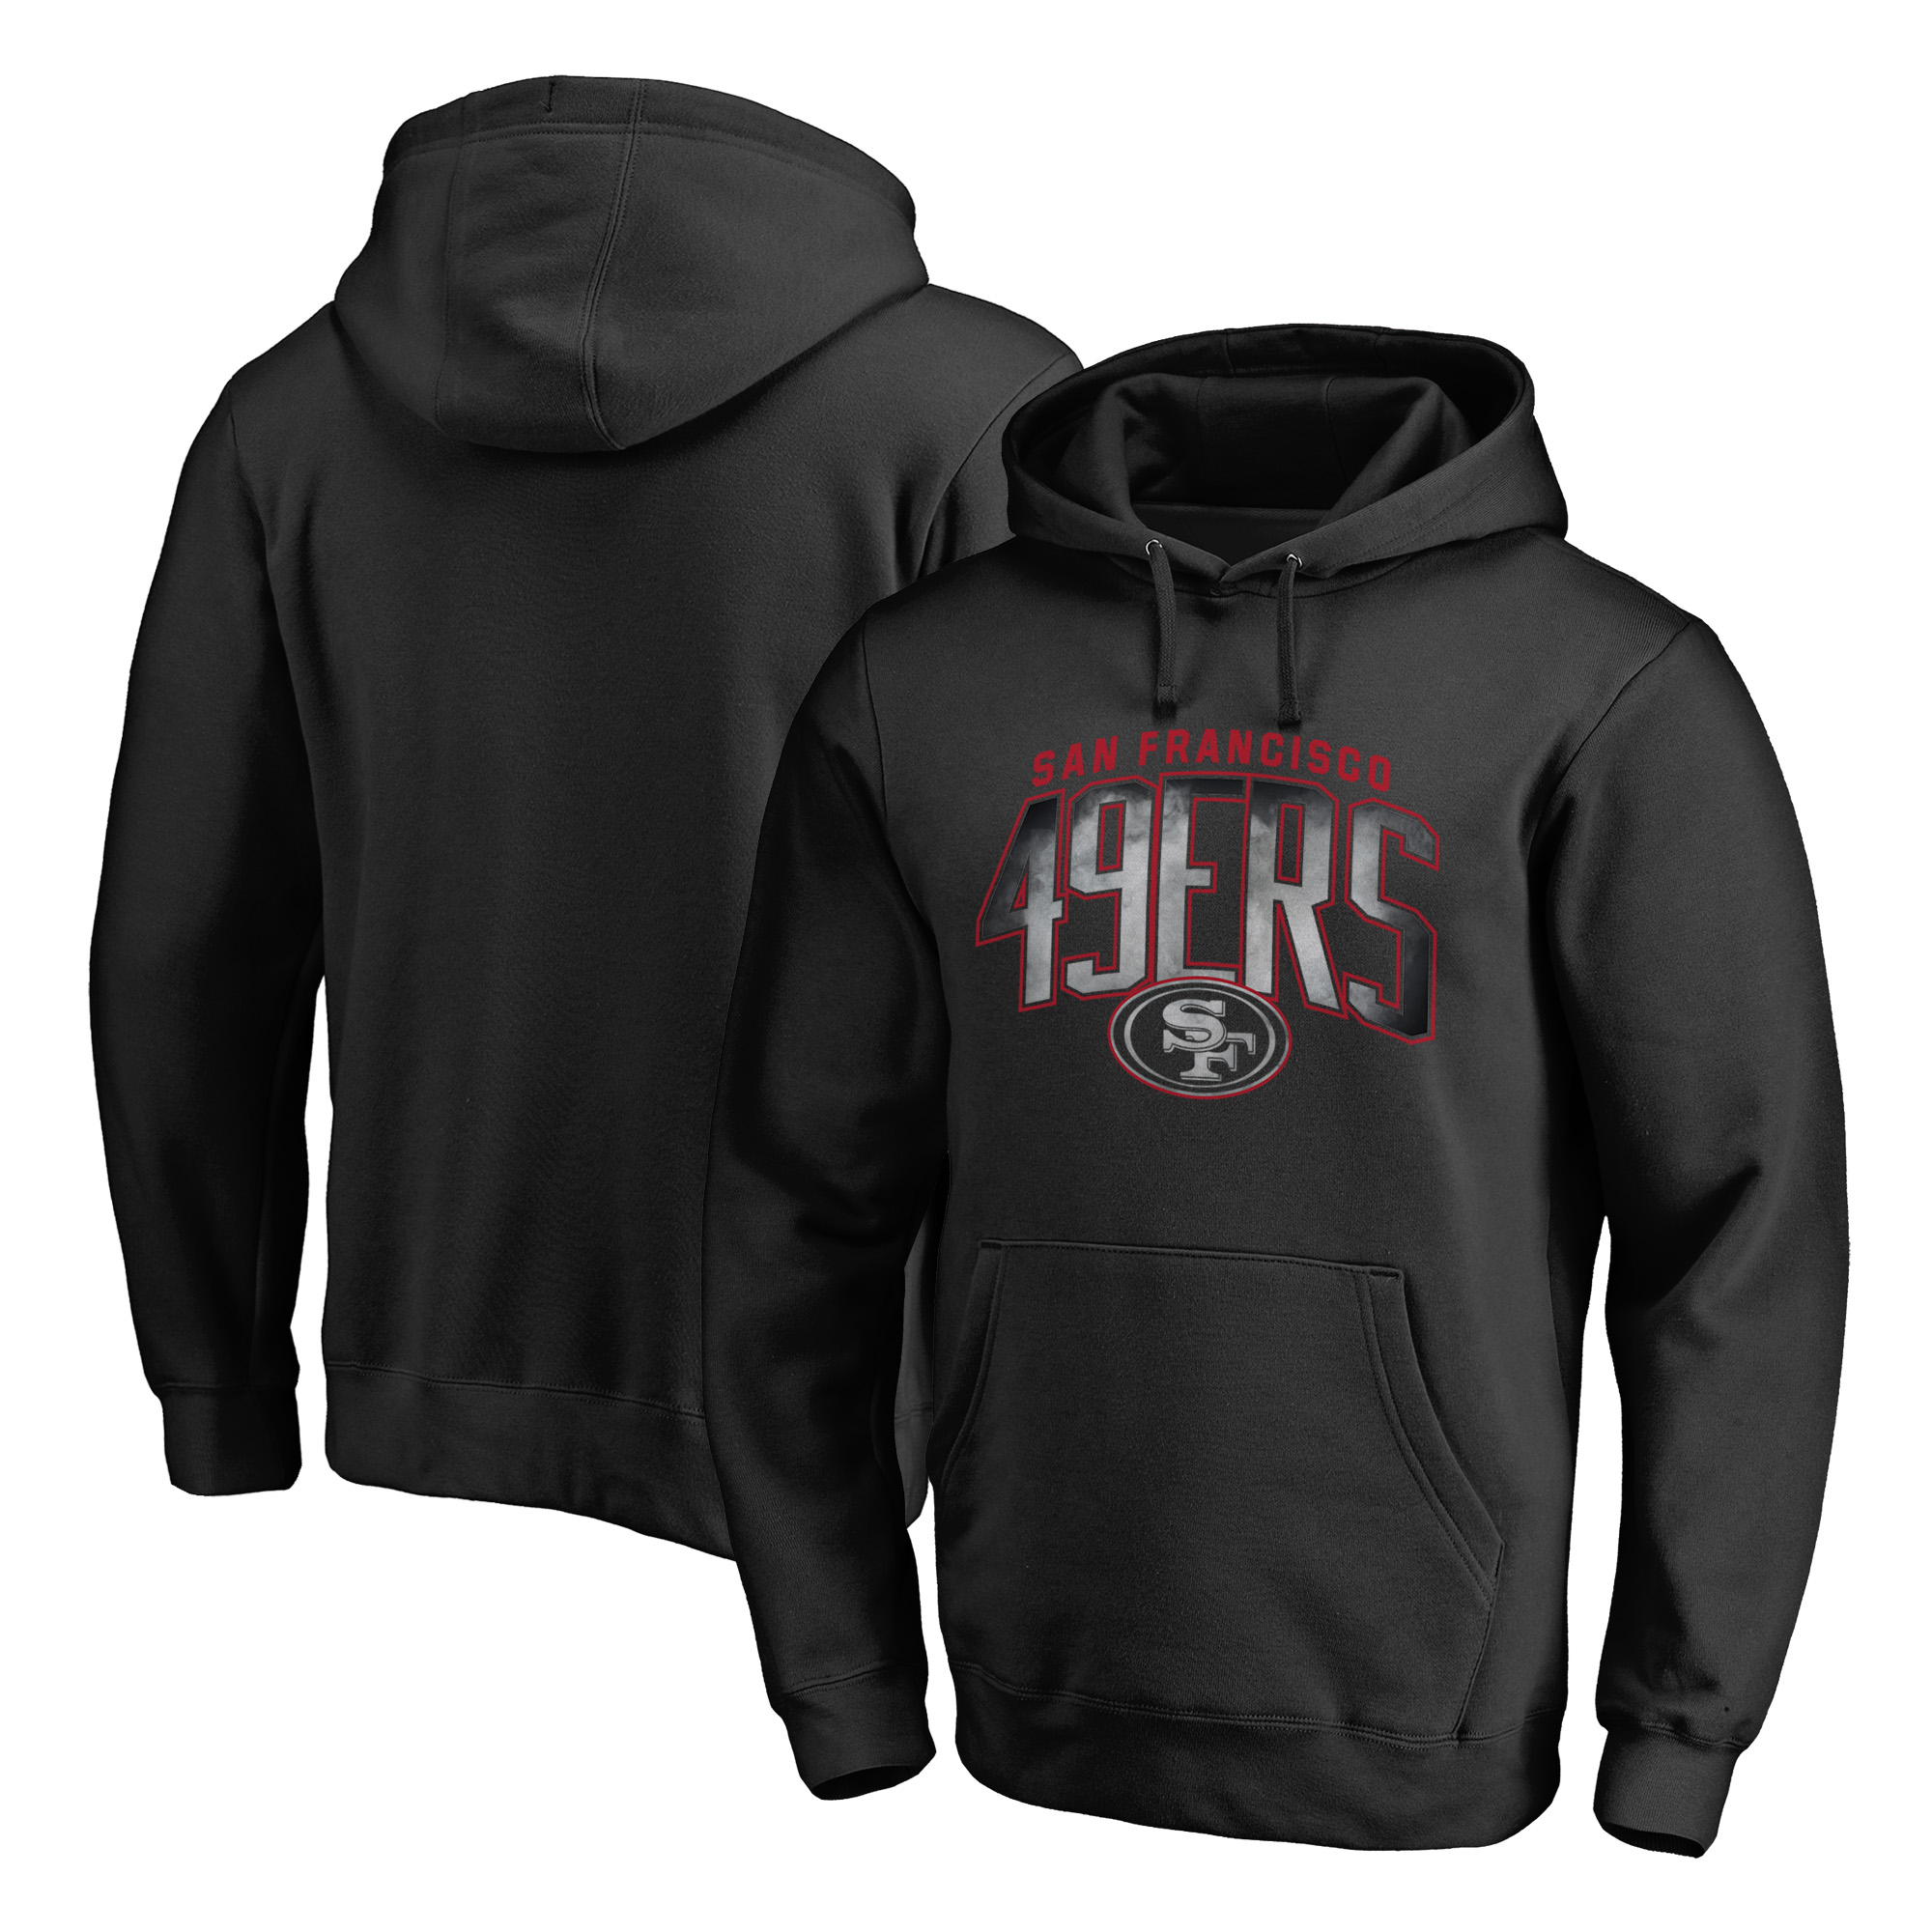 San Francisco 49ers NFL Pro Line by Fanatics Branded Arch Smoke Pullover Hoodie - Black